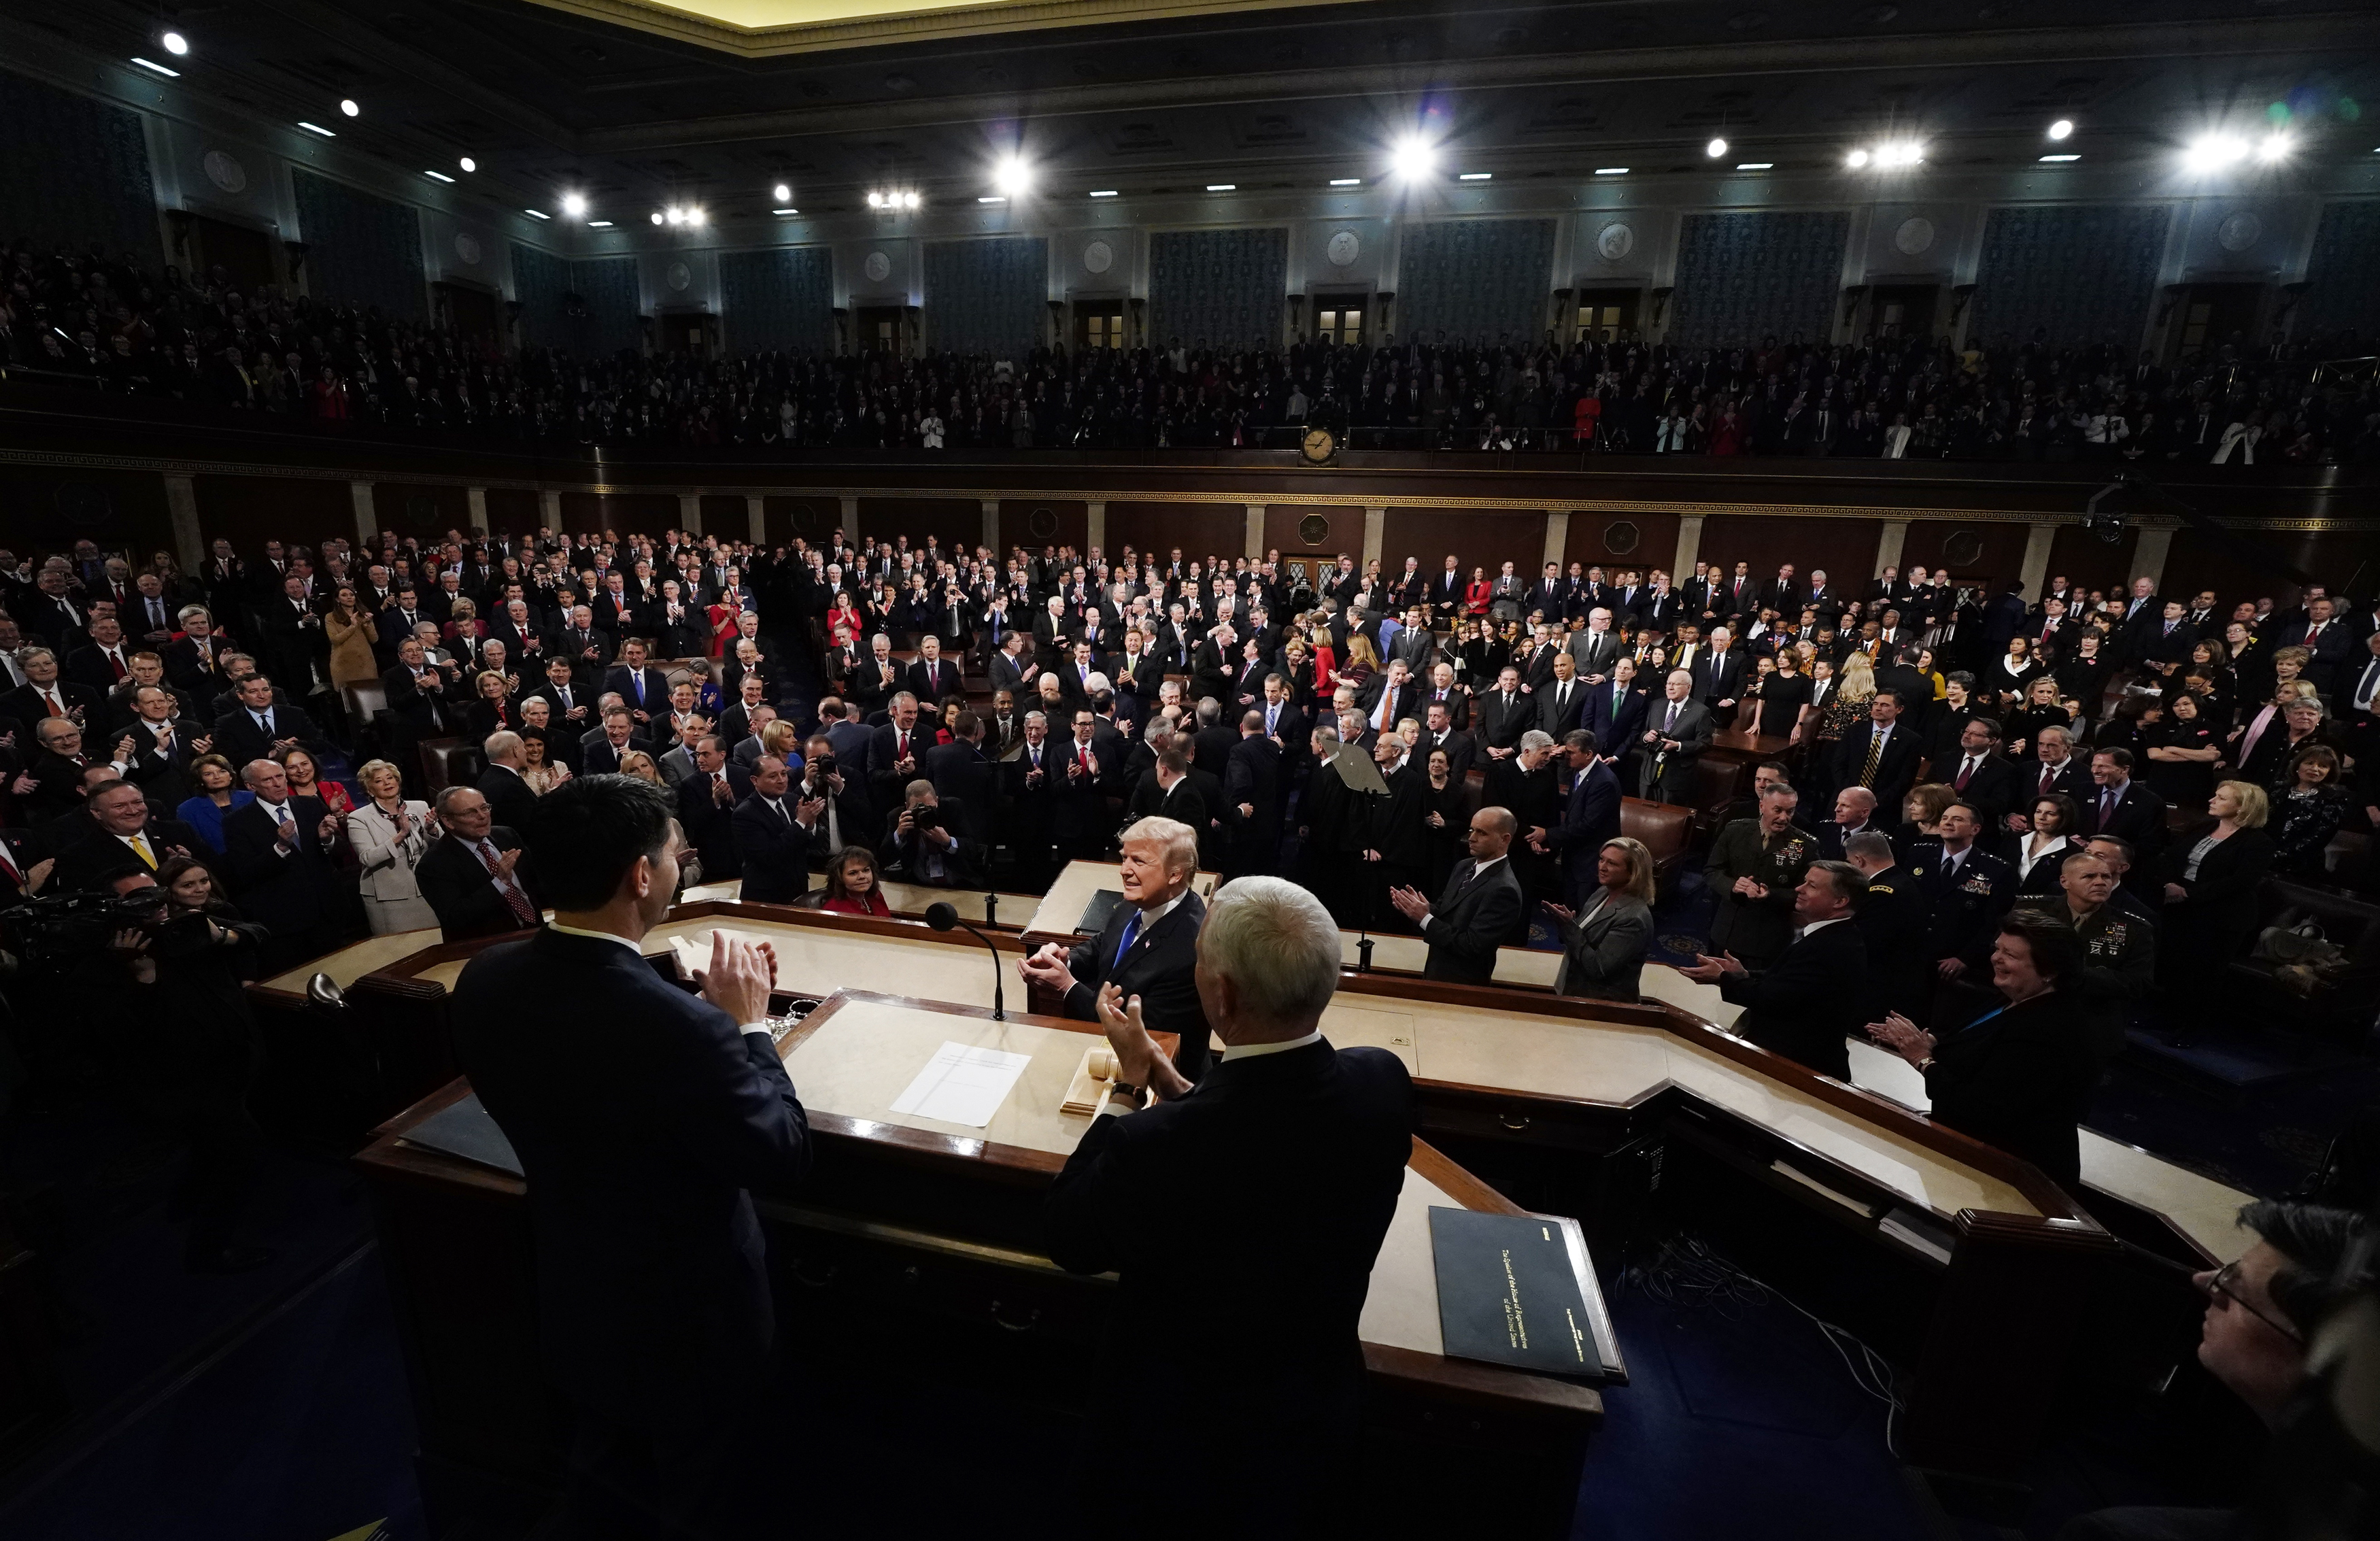 President Donald Trump arrives to deliver his State of the Union address to a joint session of U.S. Congress on Capitol Hill in Washington, Jan. 30, 2018.